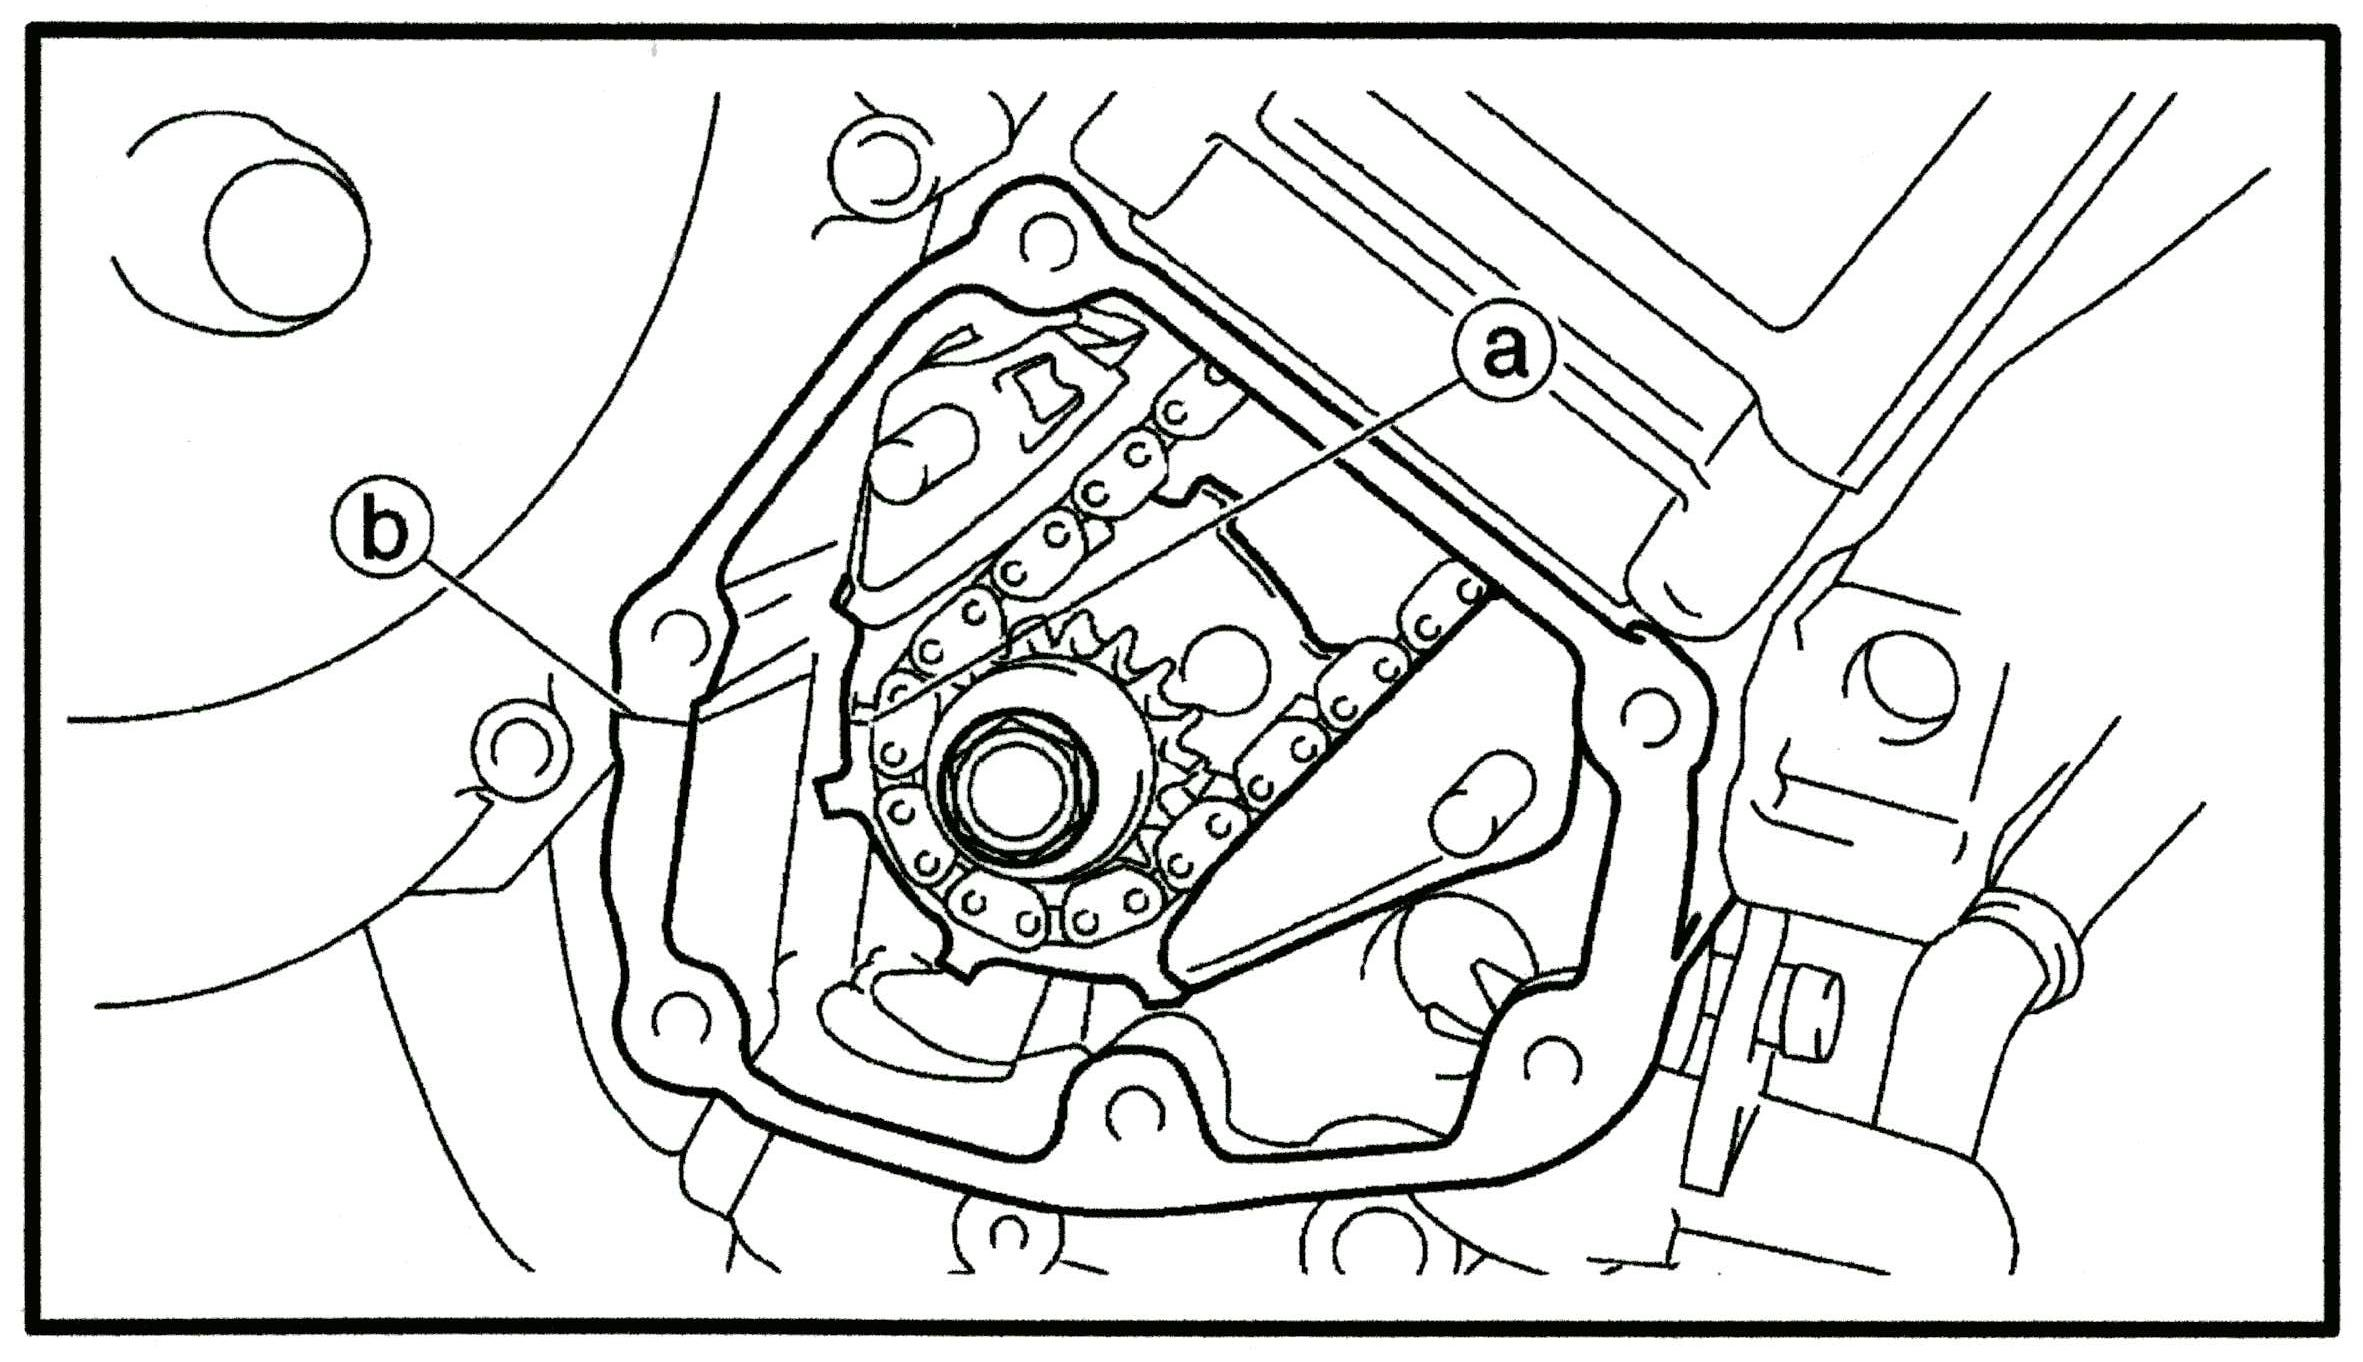 Geo metro wiring diagram on ignition switch